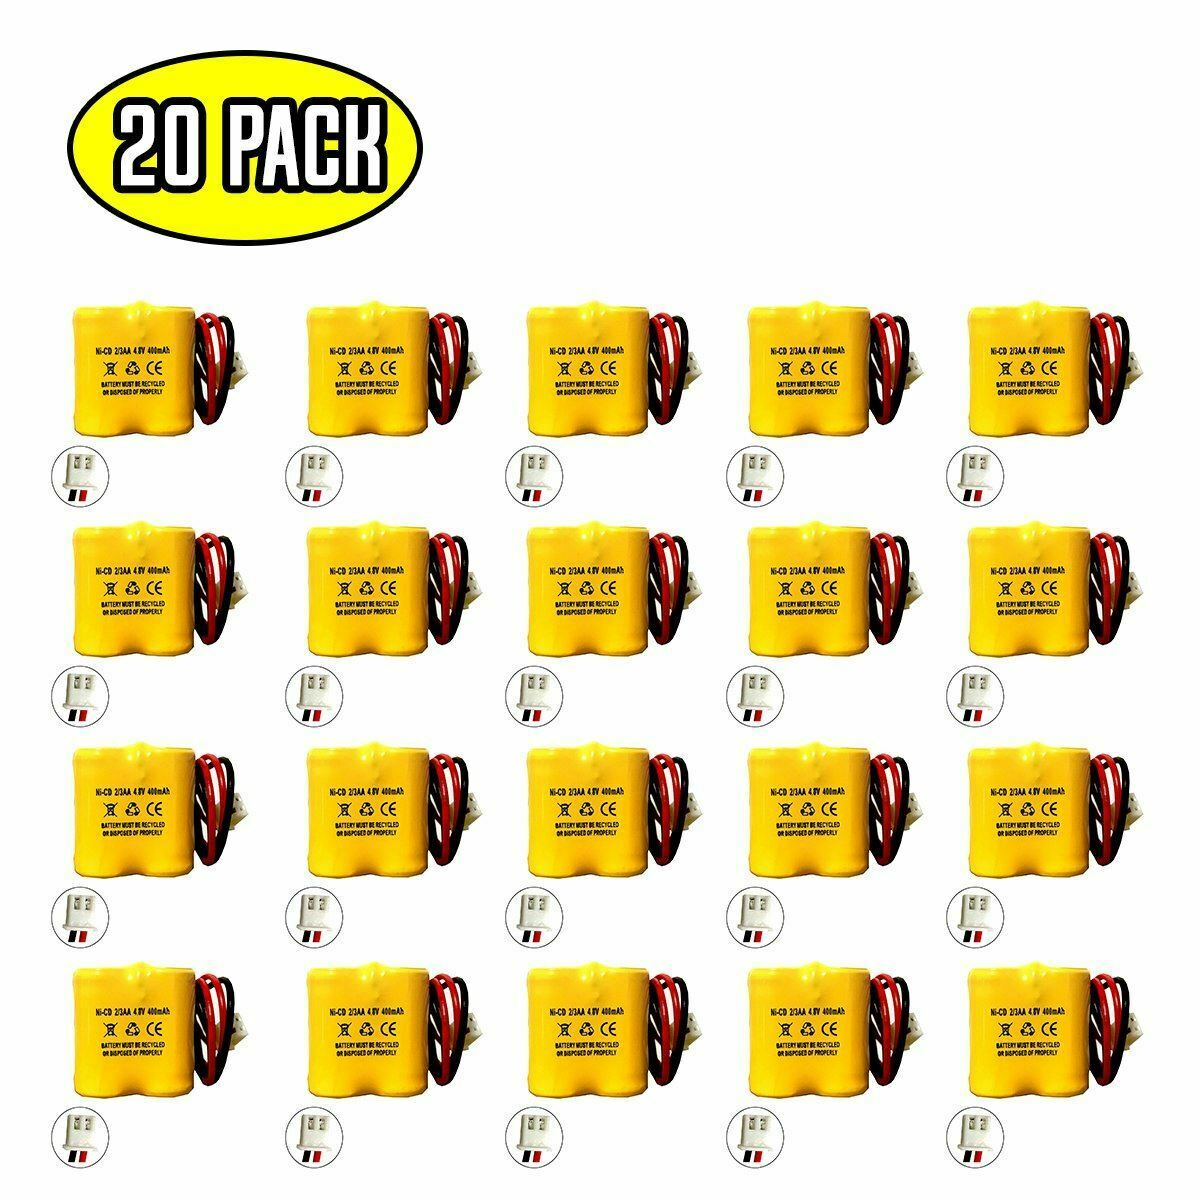 (20 pack) 4.8v 400mAh Ni-CD Battery Pack Replacement for Emergency / Exit Light